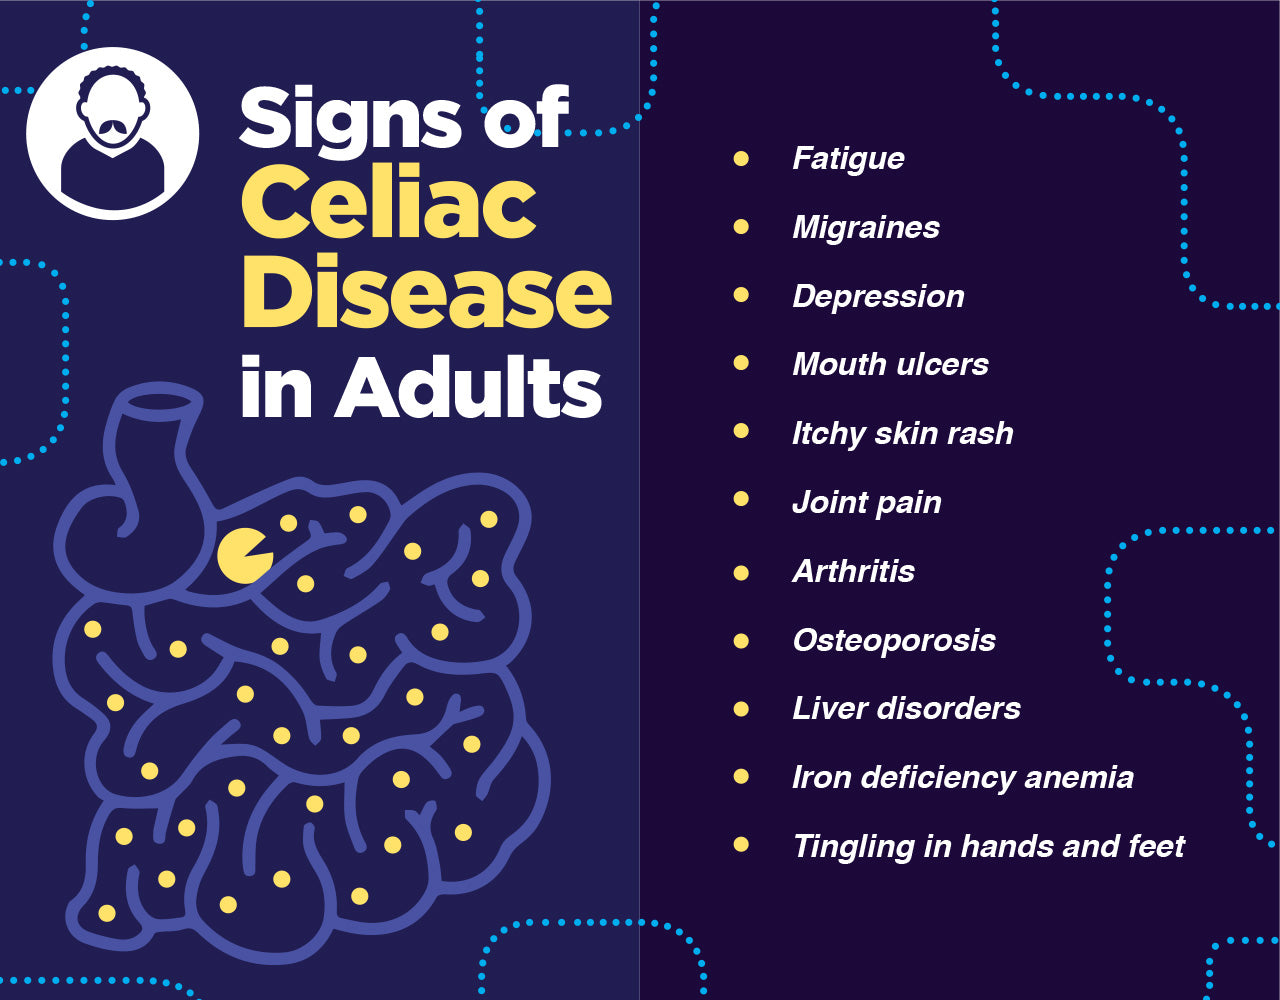 Signs of celiac disease in adults